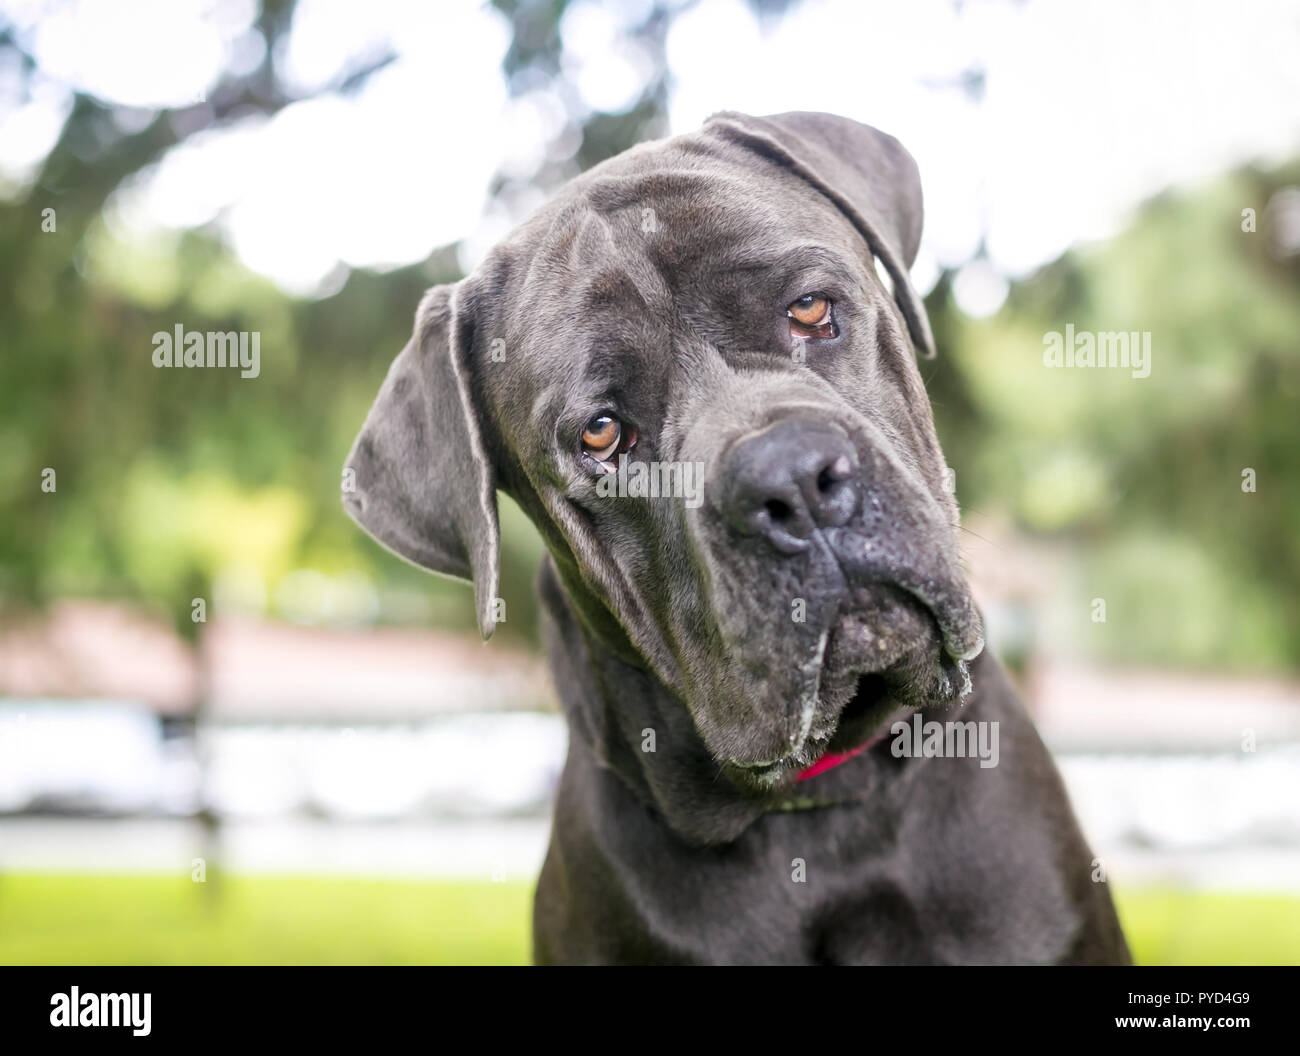 A Purebred Cane Corso Mastiff Dog Outdoors Listening With A Head Tilt Stock Photo Alamy